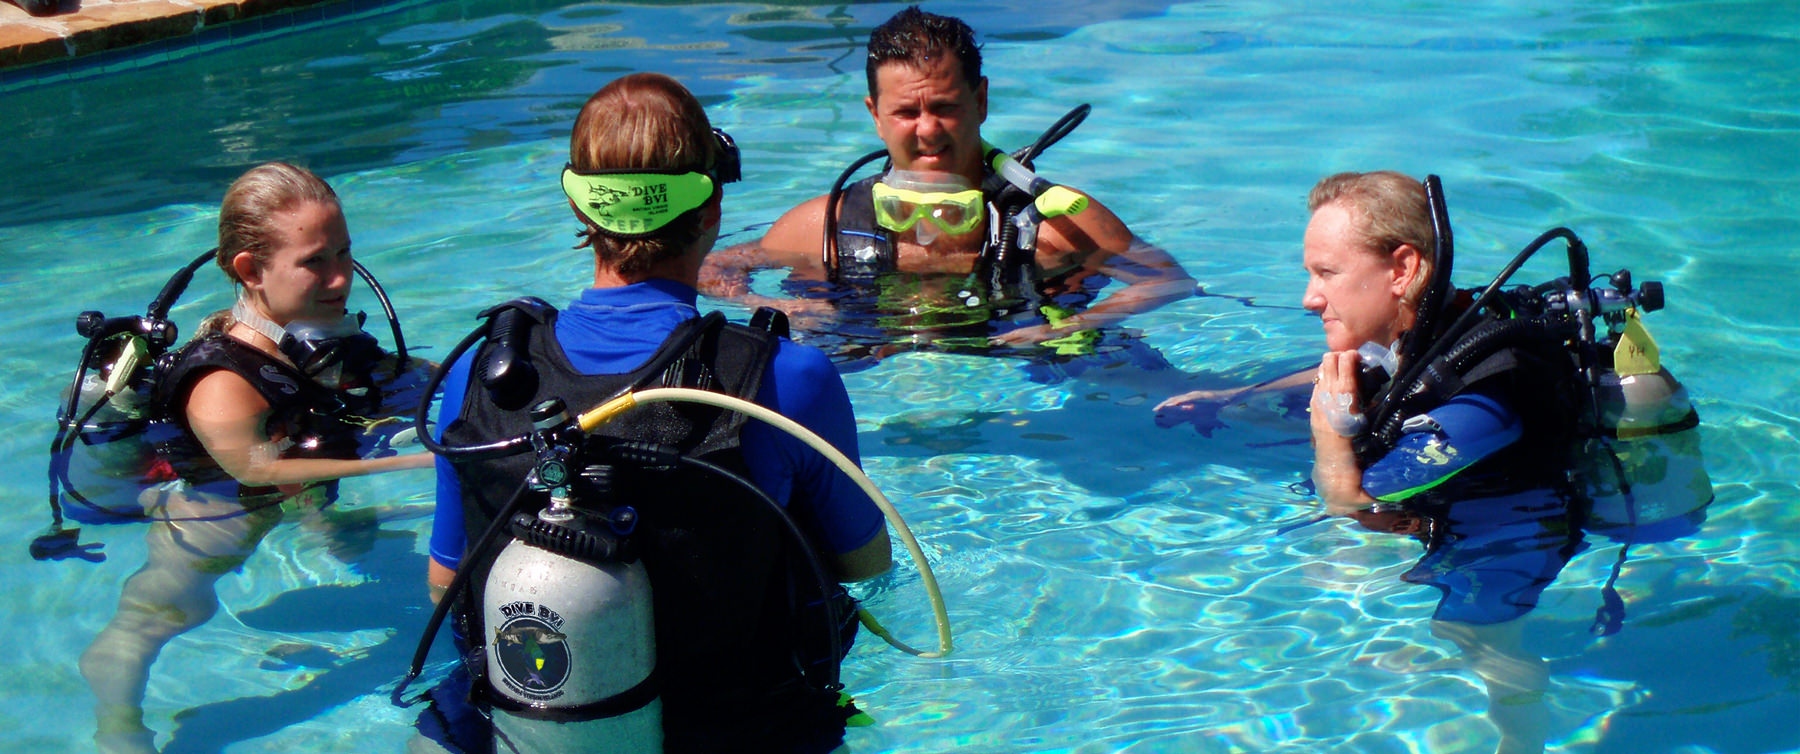 Scuba-Instructions-slideshow-1